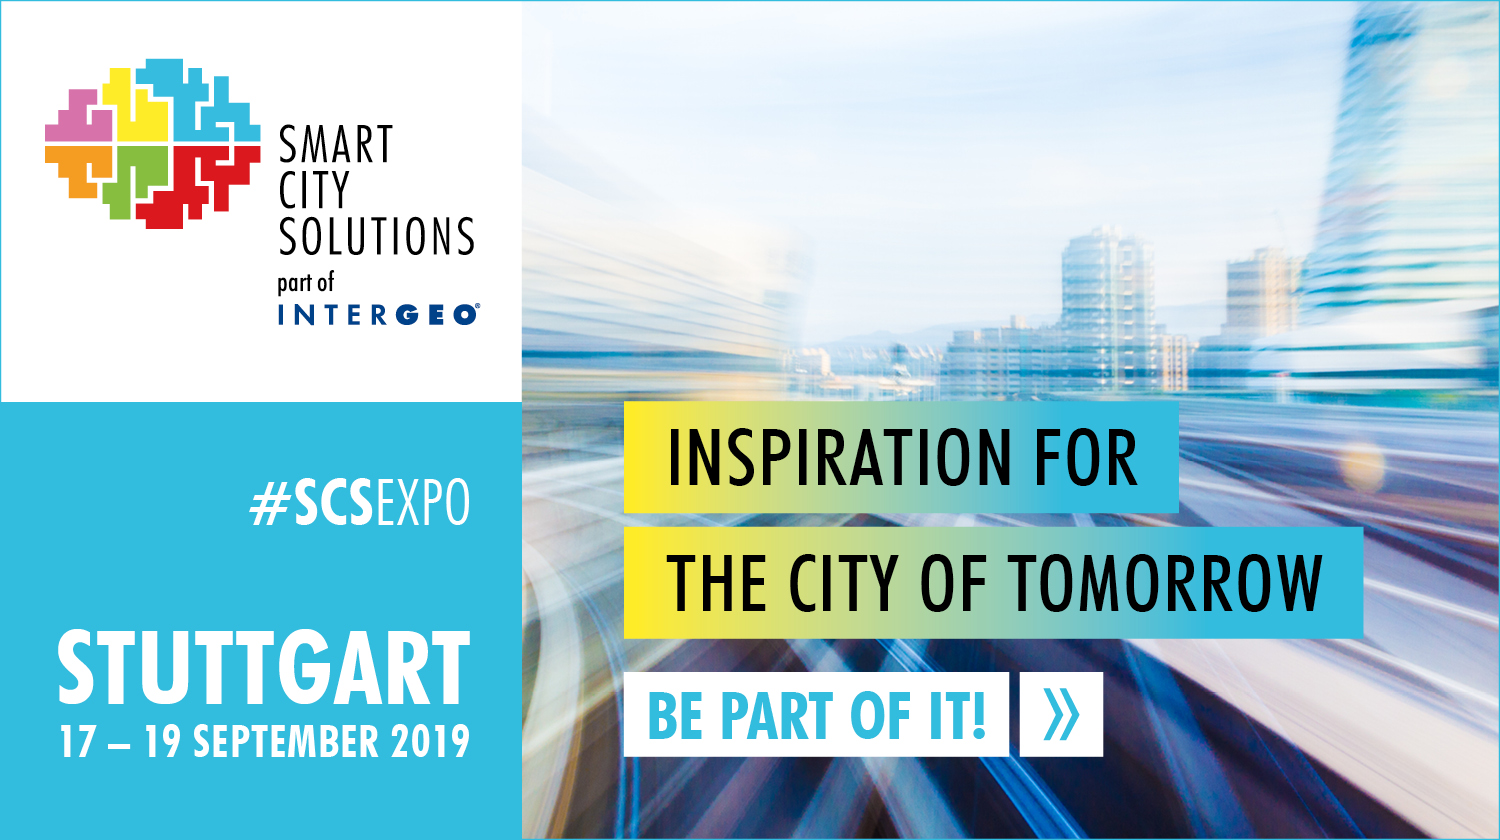 Smart City Solutions Expo 2019